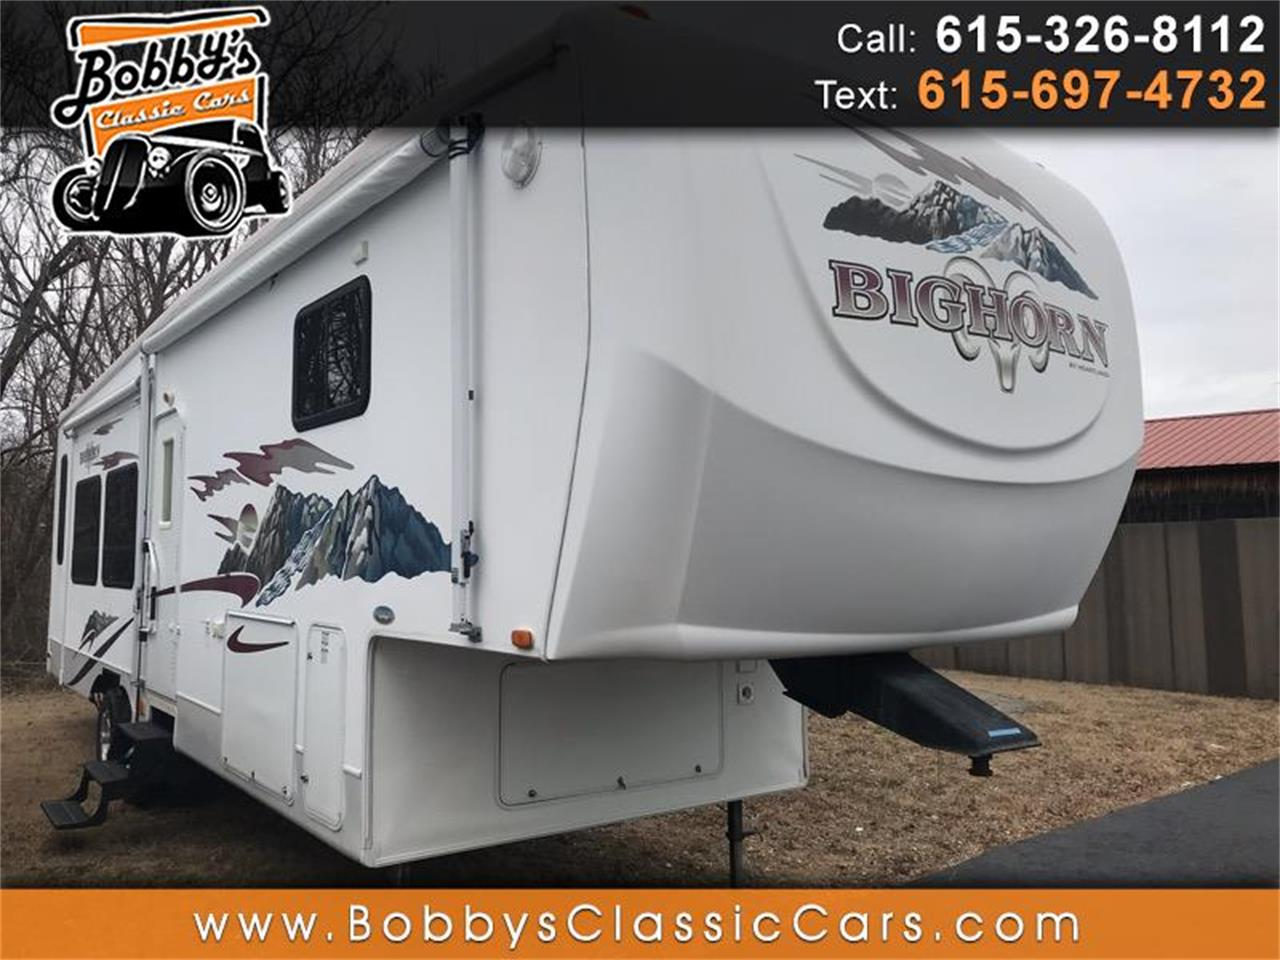 2007 Heartland Recreational Vehicle for sale in Dickson, TN